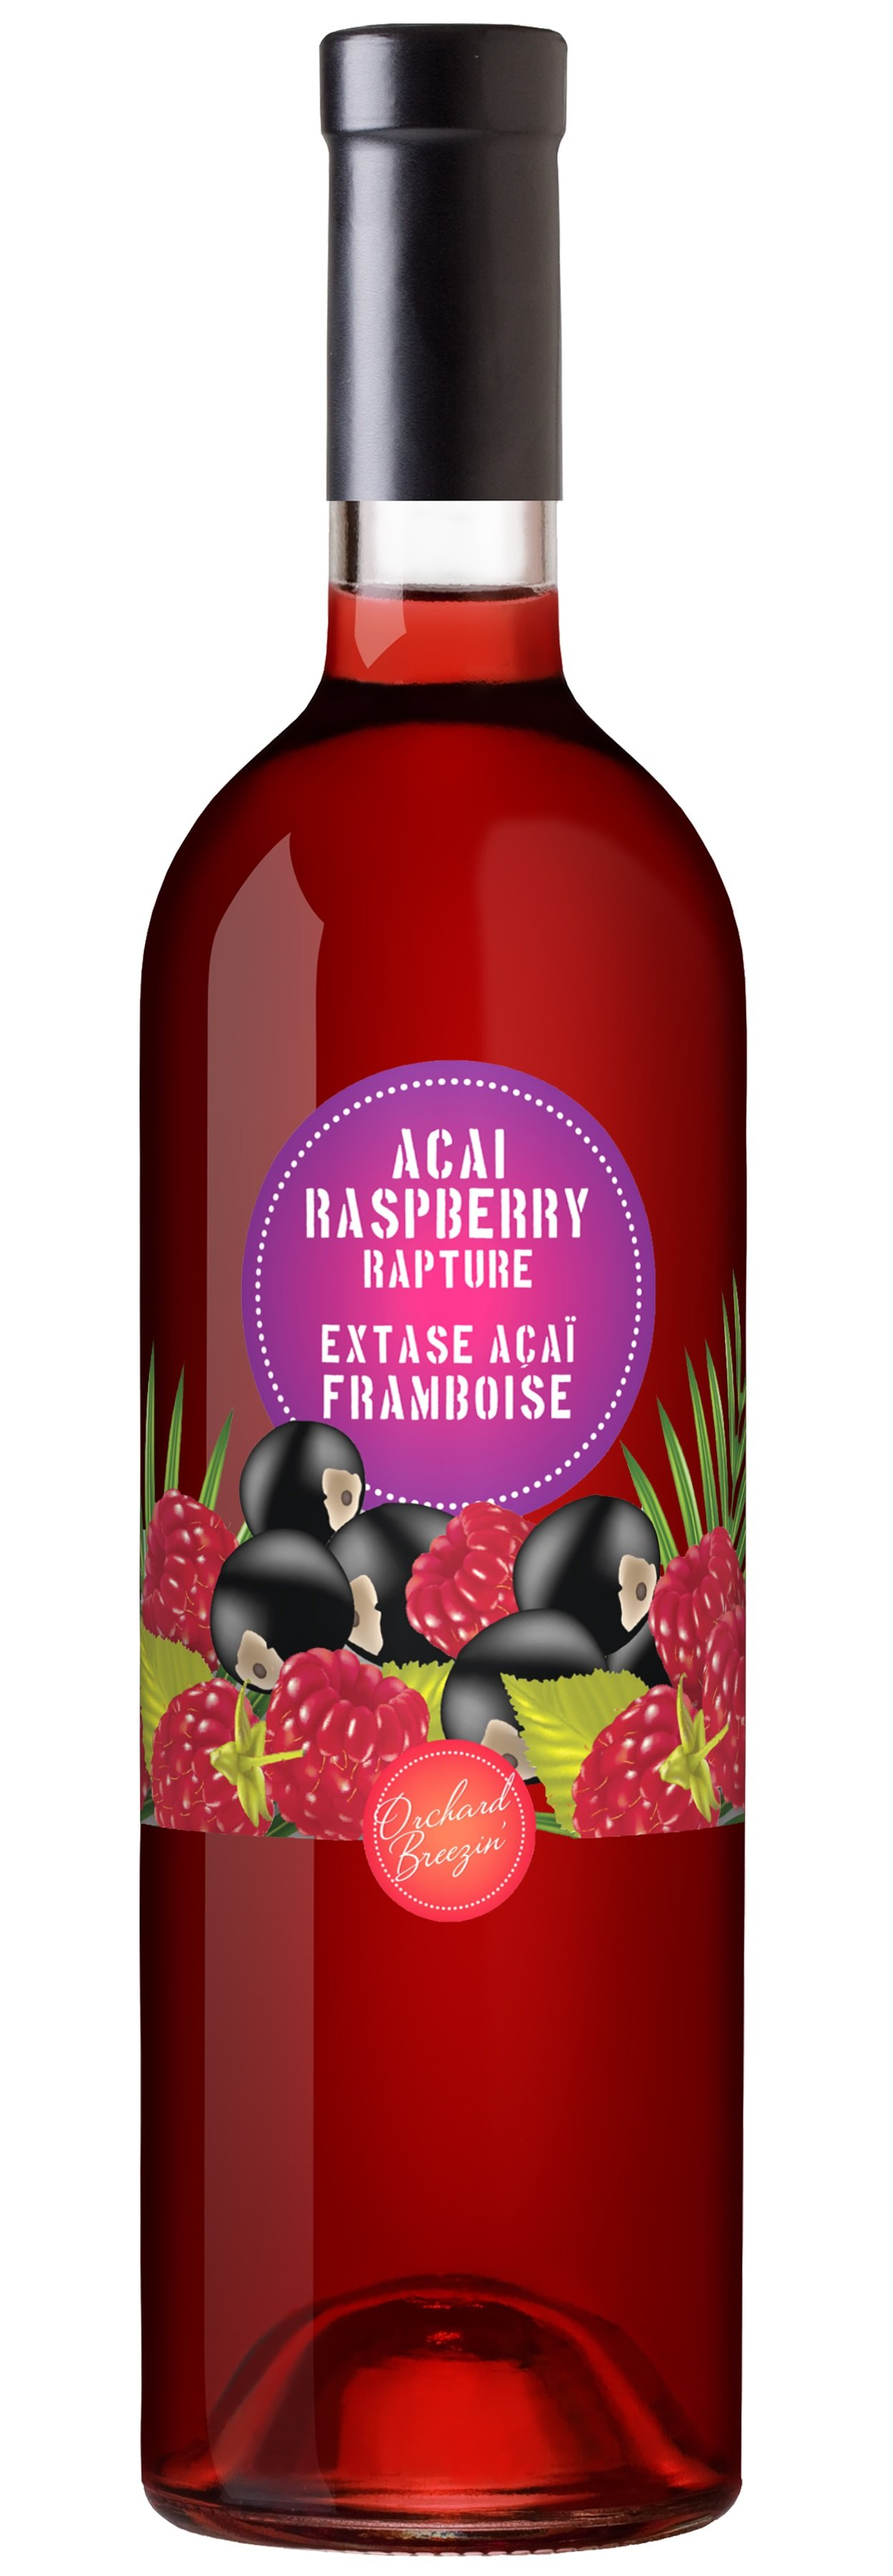 https://0901.nccdn.net/4_2/000/000/06b/a1b/OB_Bottle_AcaiRasberryRapture.jpg